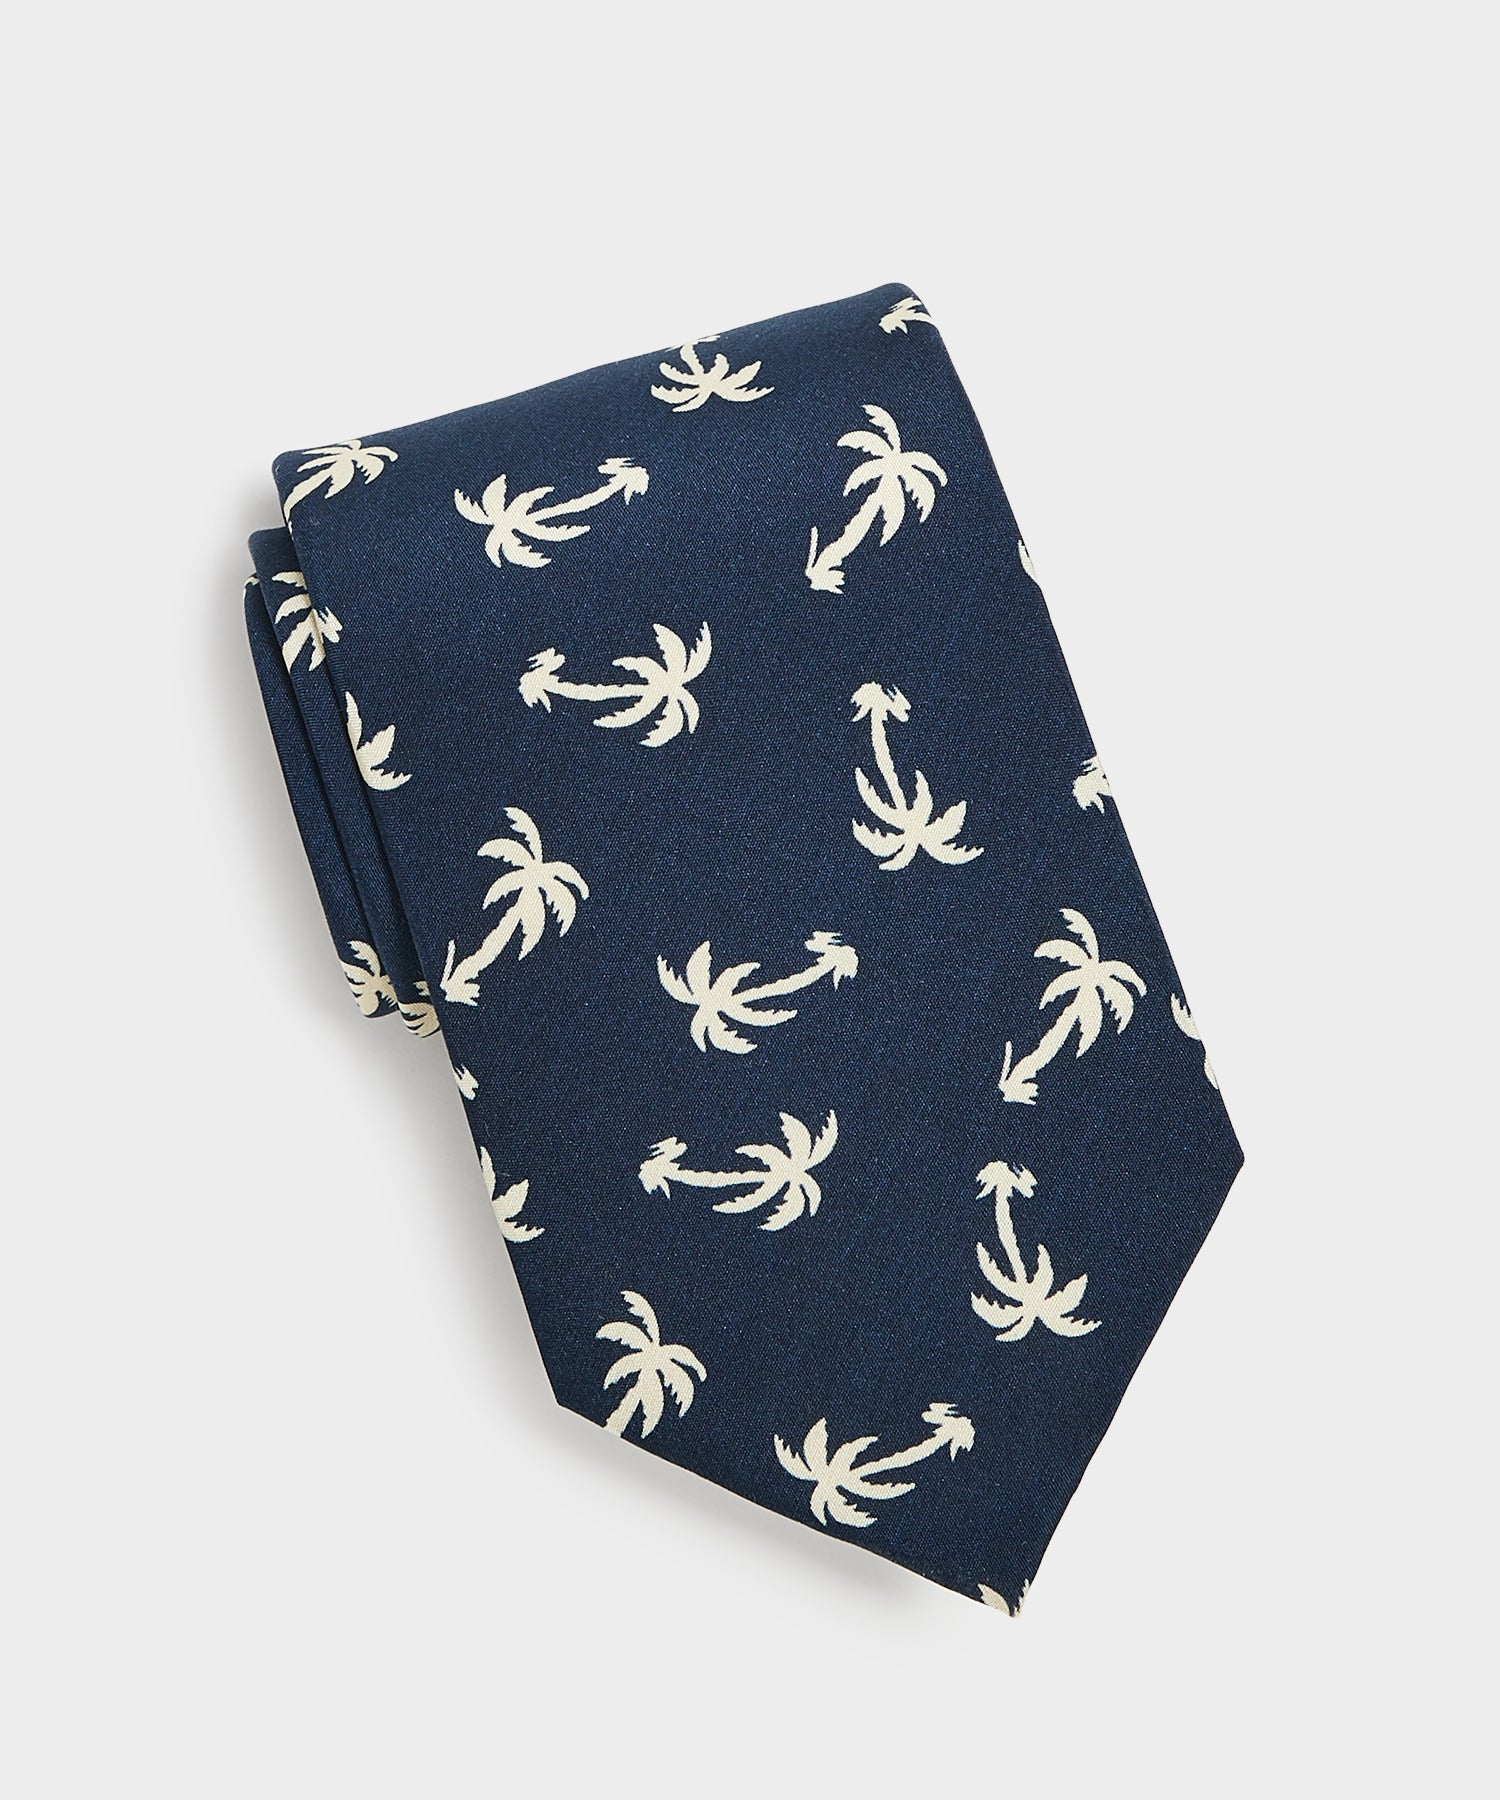 Drake's Palm Tree Print Silk Tie in Navy